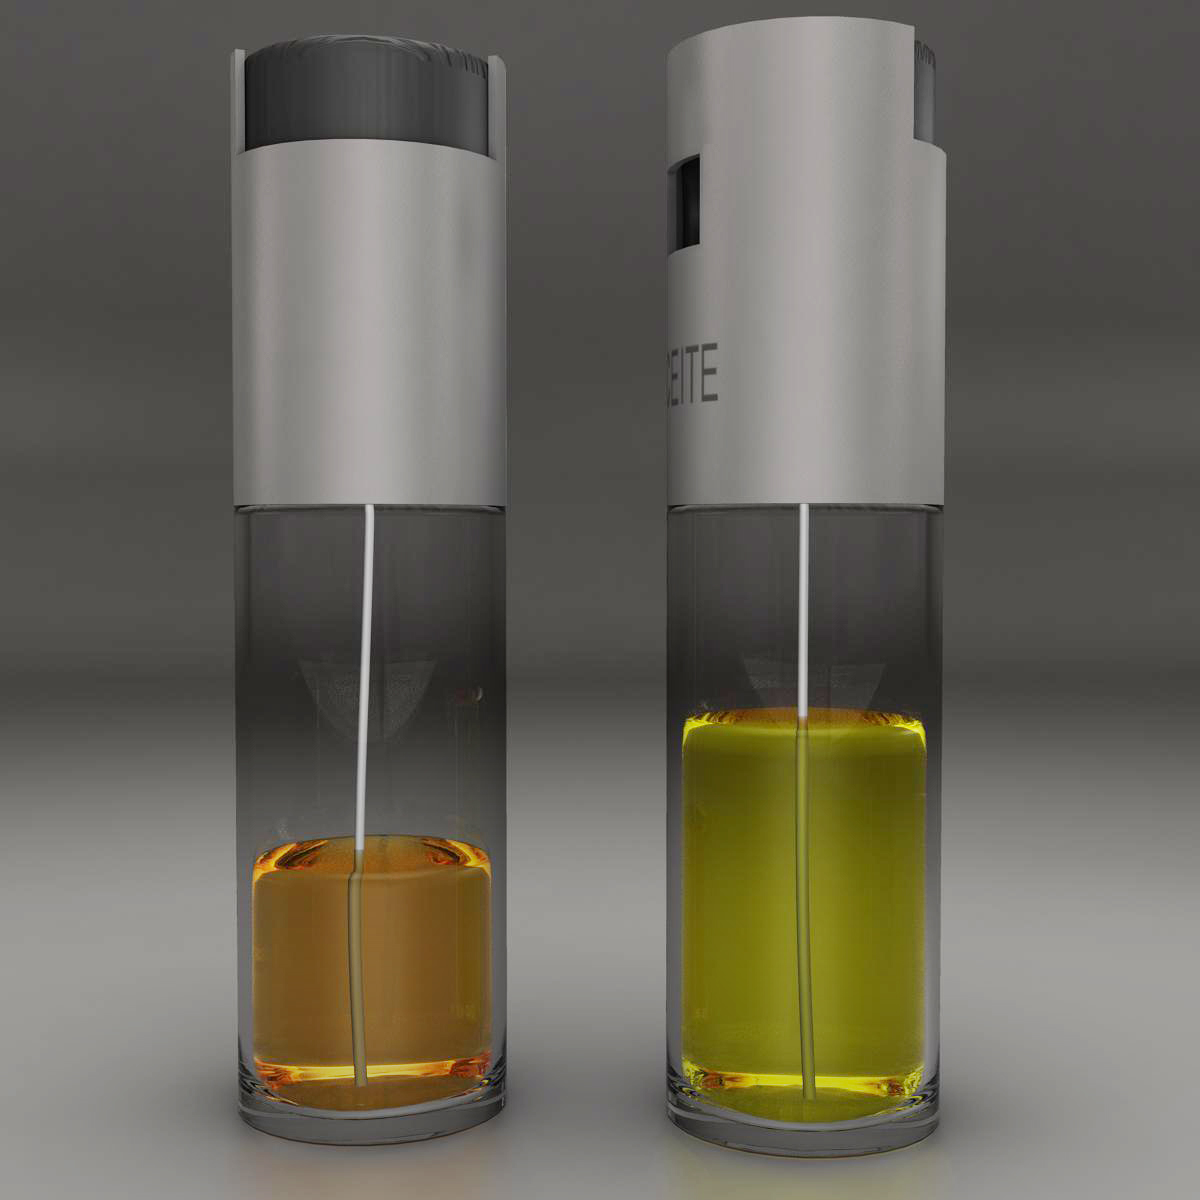 oil and vinegar 3d model 3ds max fbx c4d ma mb obj 159376